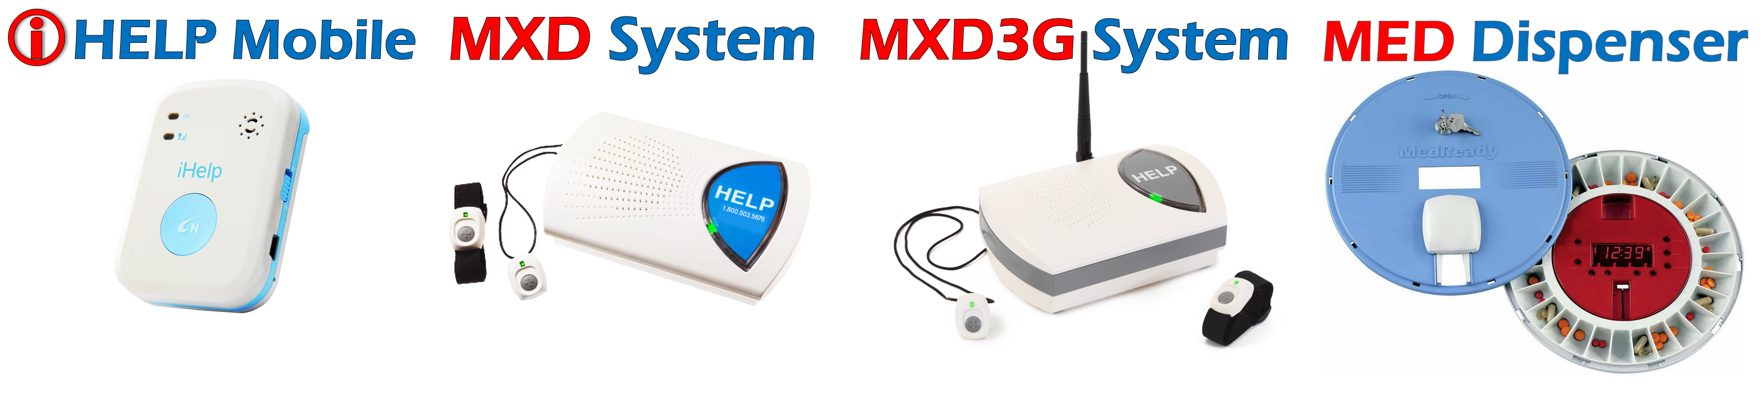 alerts911 products list, iHelp Mobile, MXD, MXD3G, Med Dispenser, personal emergency response systems